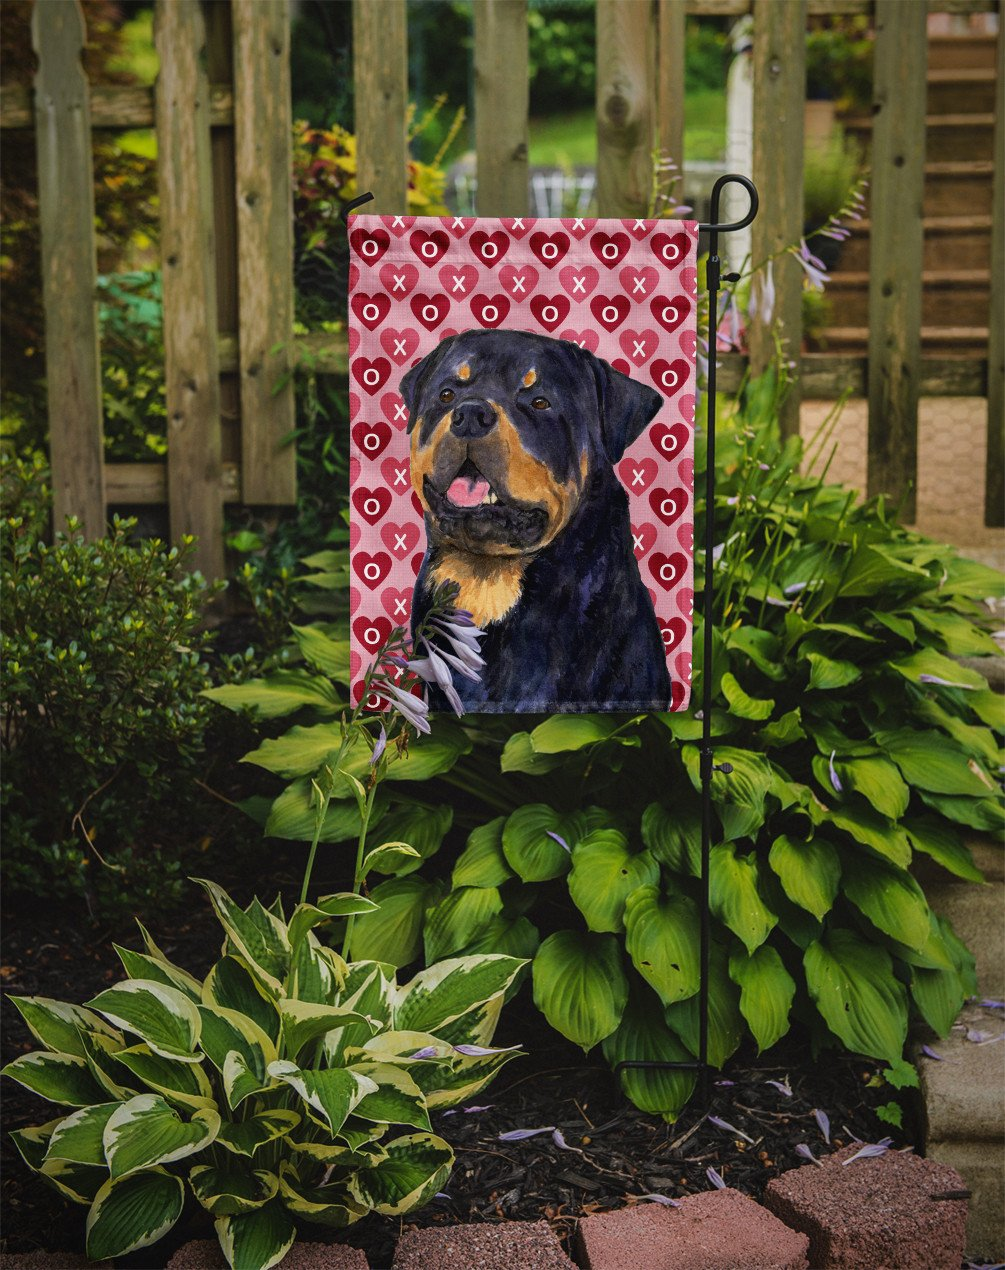 Rottweiler Hearts Love and Valentine's Day Portrait Flag Garden Size by Caroline's Treasures